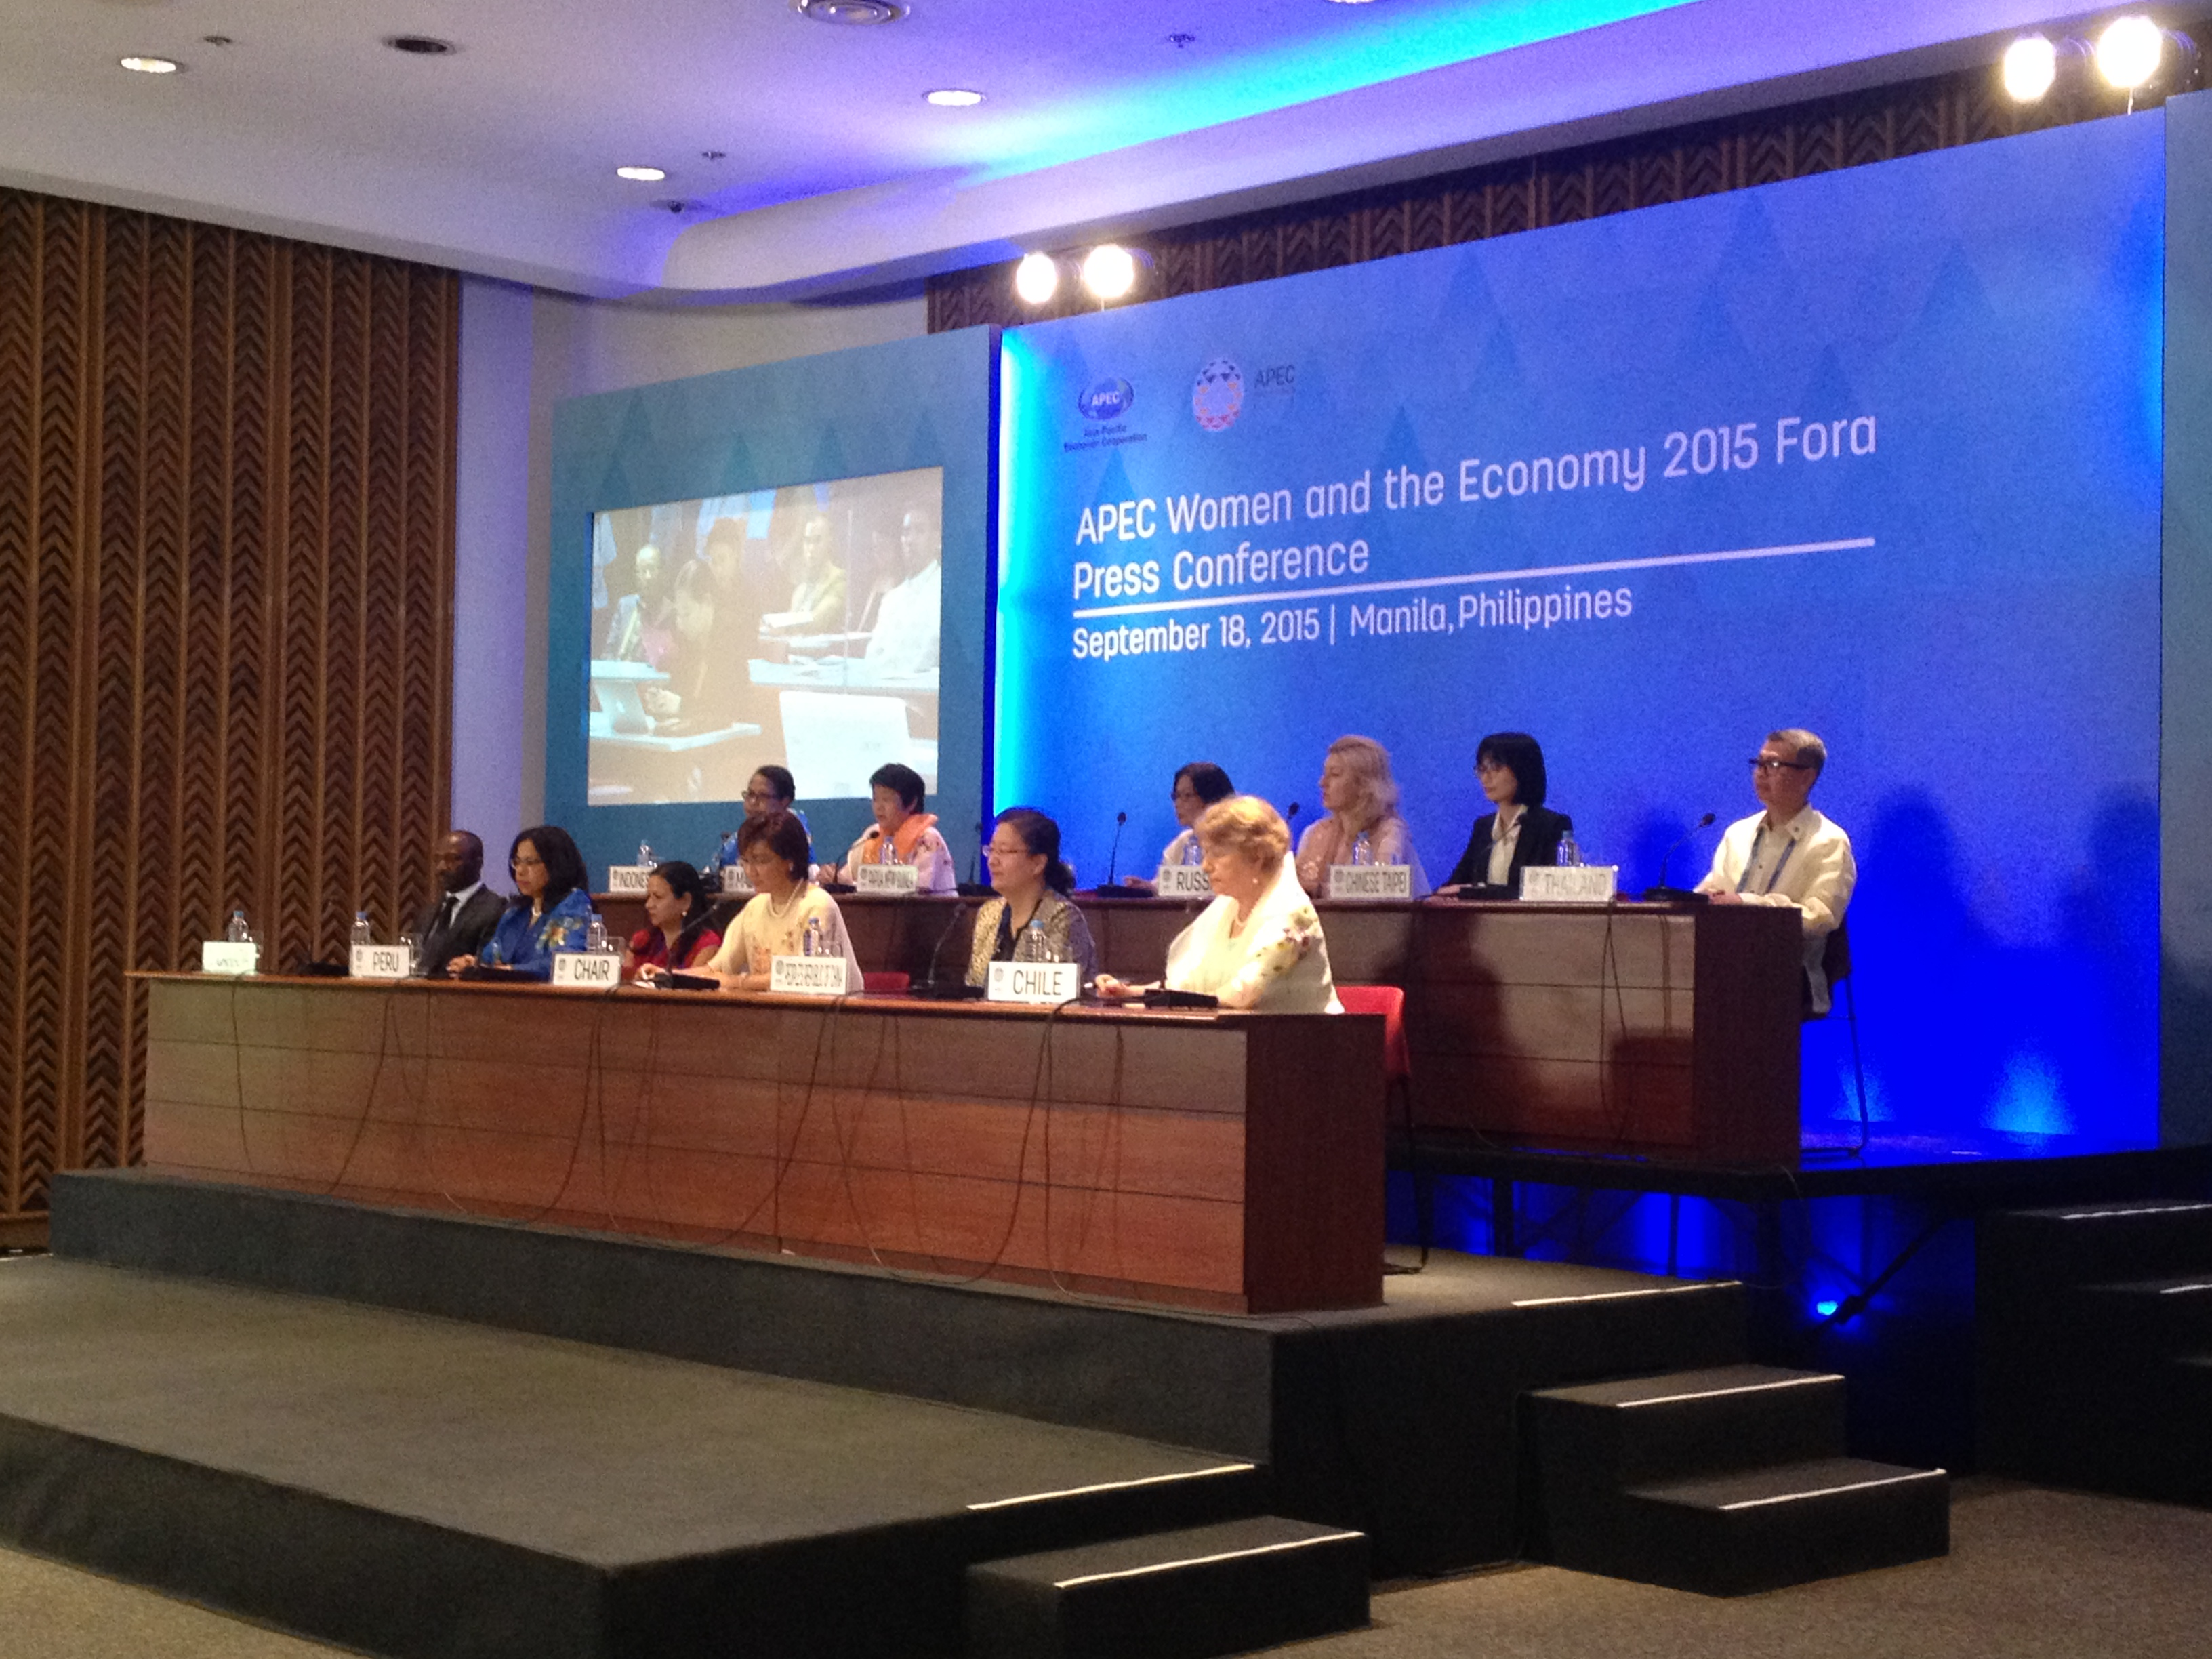 JOINT STATEMENT. APEC leaders release a 35-point joint statement (plus two annexes) on Friday, September 18, 2015, as a recognition to women's contribution for economic development and prosperity in the region and beyond. All photos by Lynda C. Corpuz / Rappler